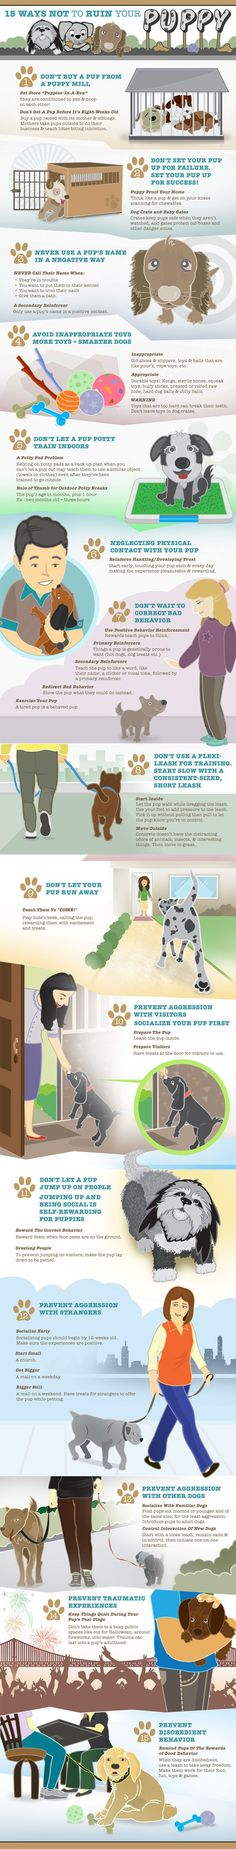 Partners for the Cuba Pound supports training and patience to make your adopted pet a lifelong companion. INFOGRAPHIC: 15 Important Ways to Not RUIN Your Puppy (scheduled via http://www.tailwindapp.com?utm_source=pinterest&utm_medium=twpin&utm_content=post6715048&utm_campaign=scheduler_attribution)